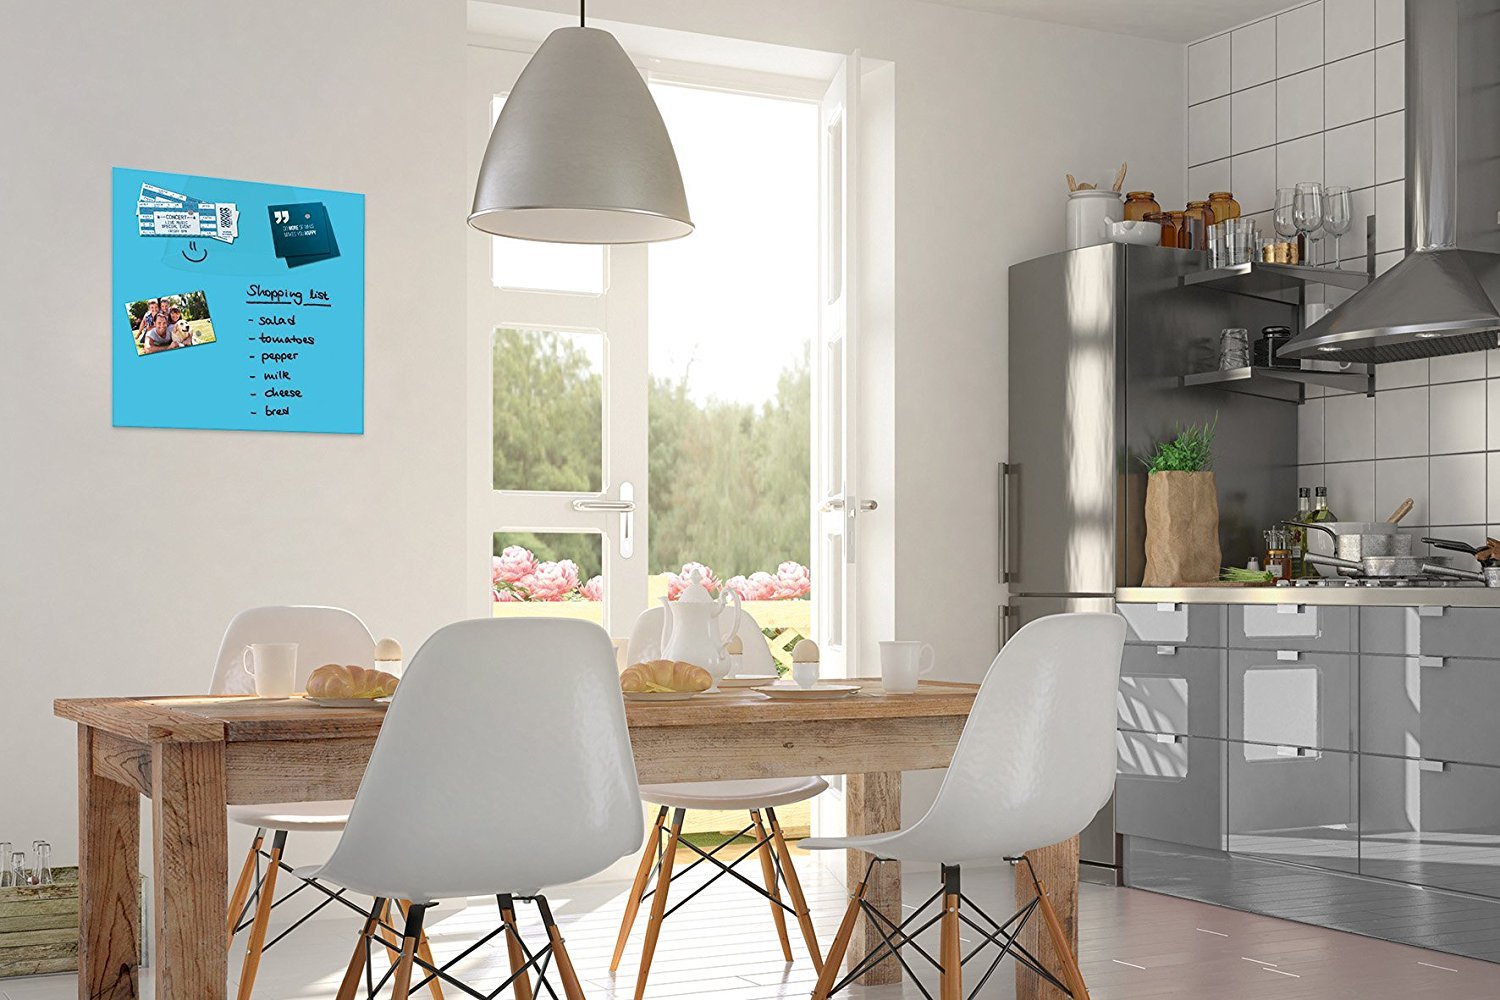 be board glas magnettafel 45x45cm magnetboard magnet tafel. Black Bedroom Furniture Sets. Home Design Ideas